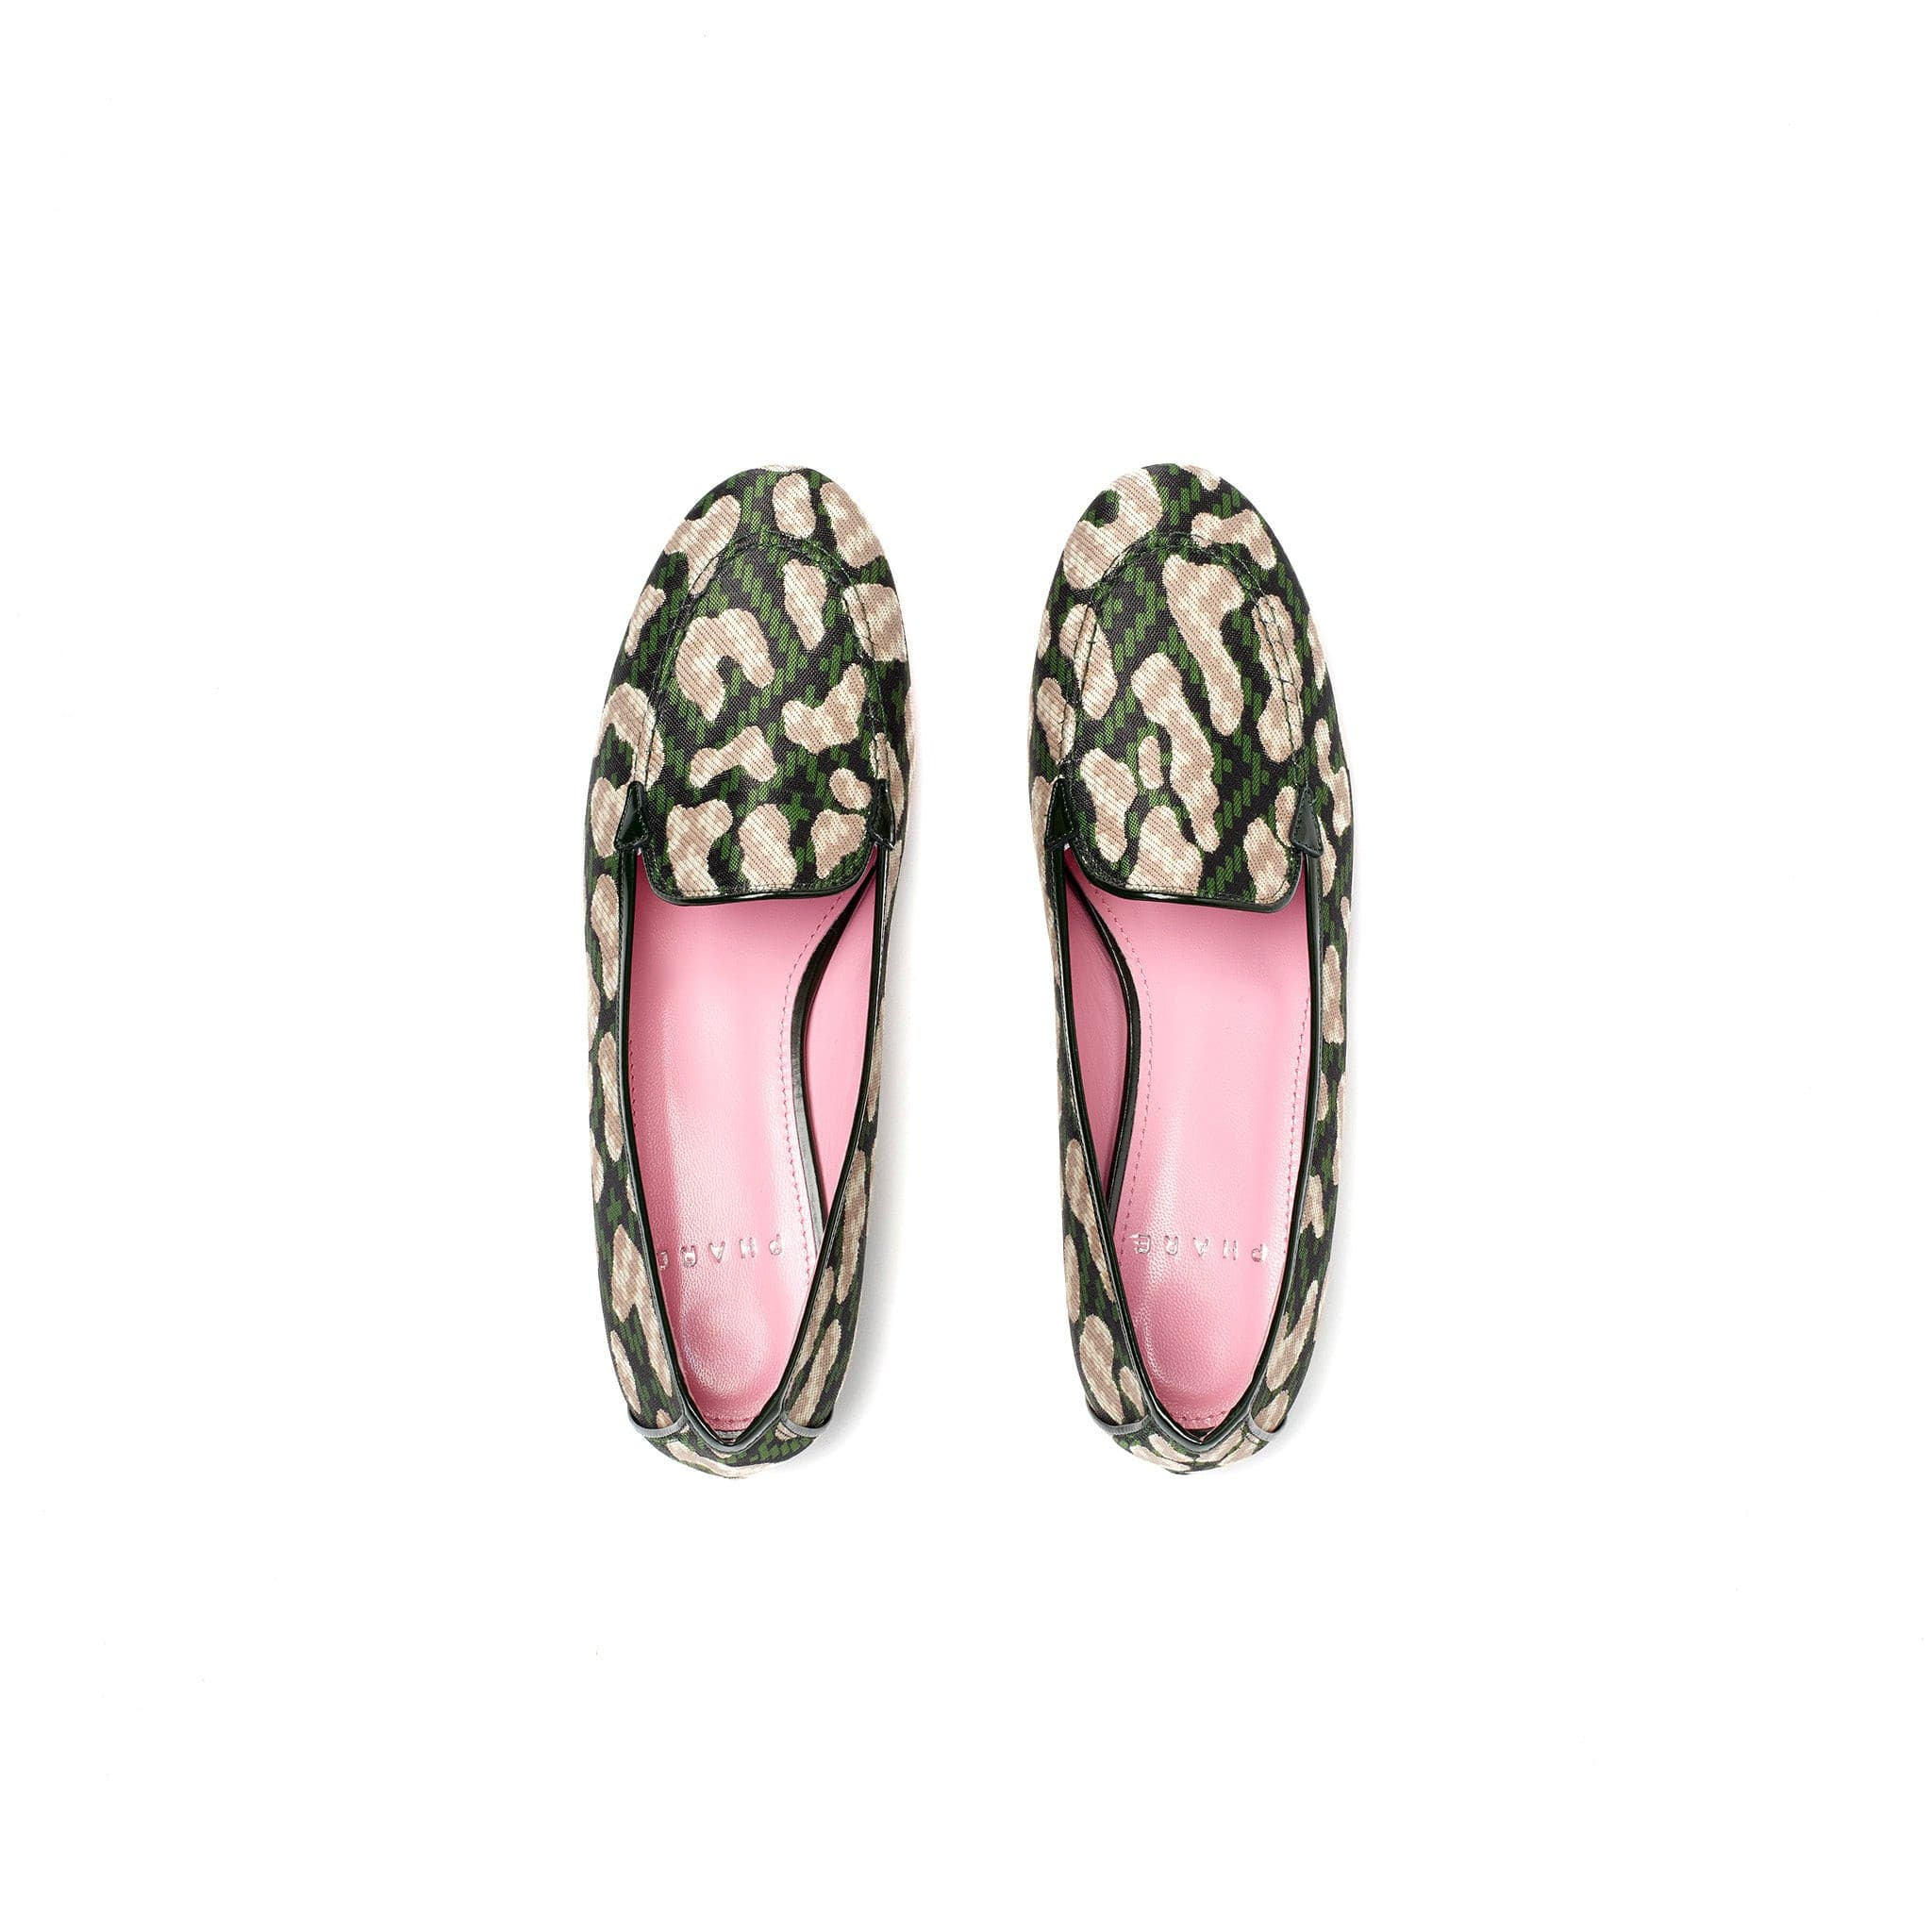 Phare classic loafer in dark green leopard jacquard top view